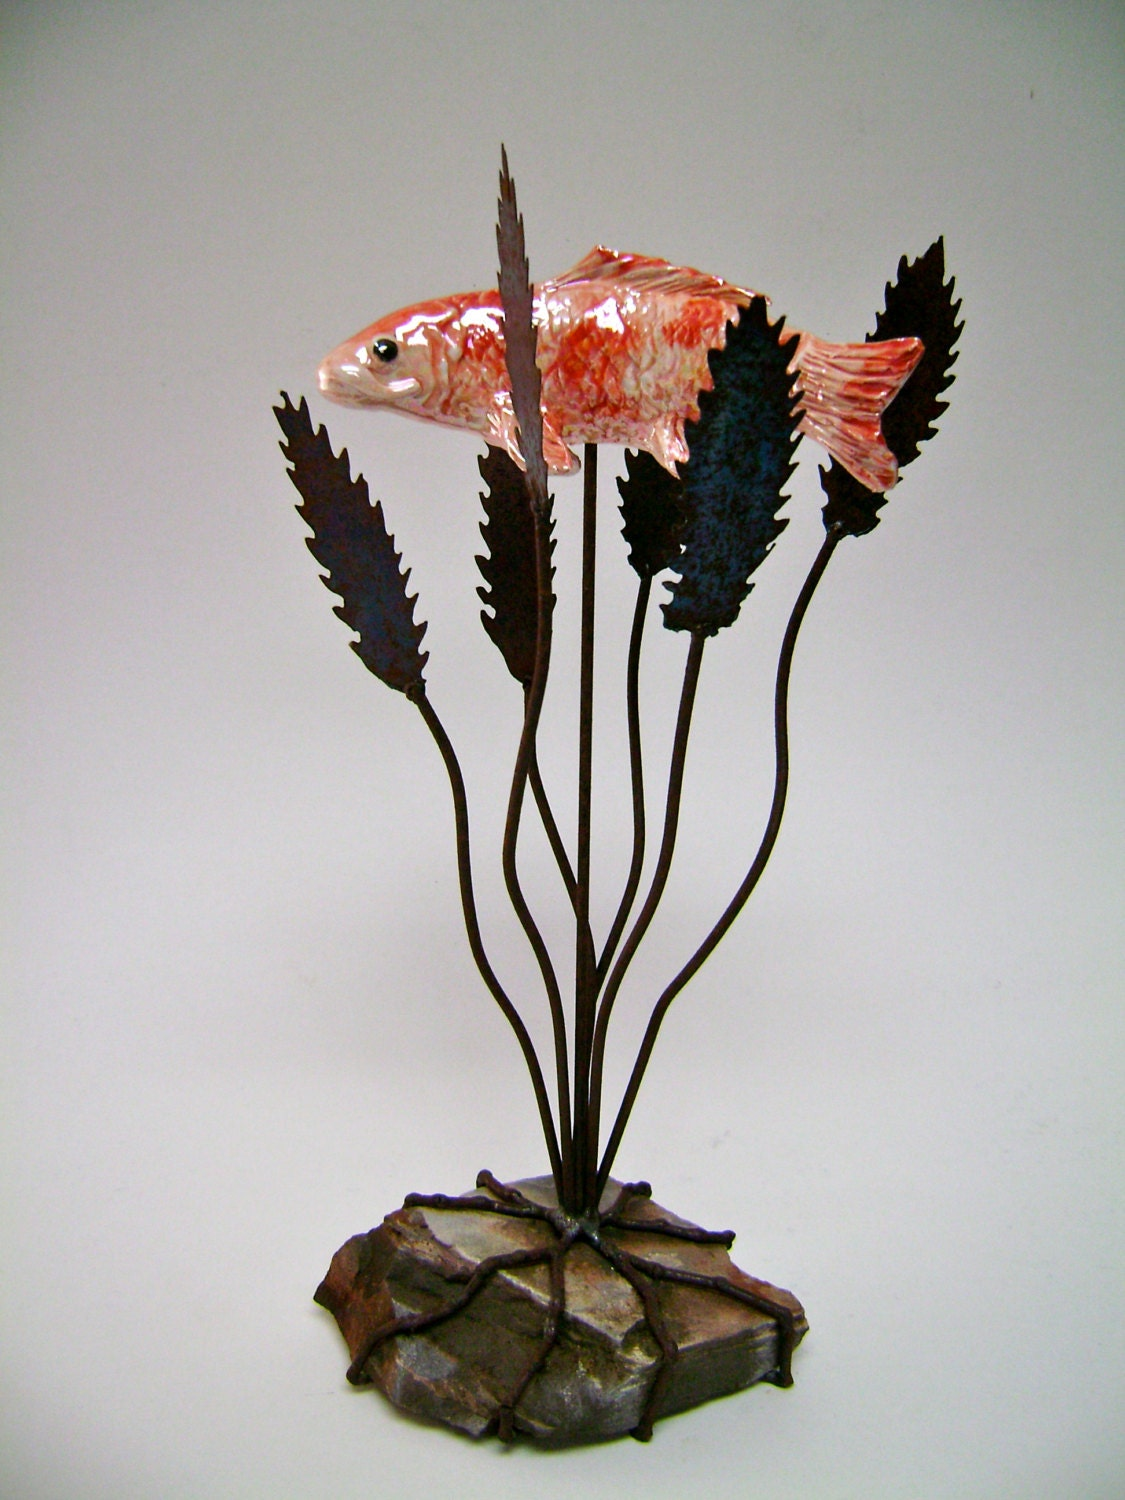 Koi sculpture metal sculpture ceramic metal sculpture for Koi fish metal art